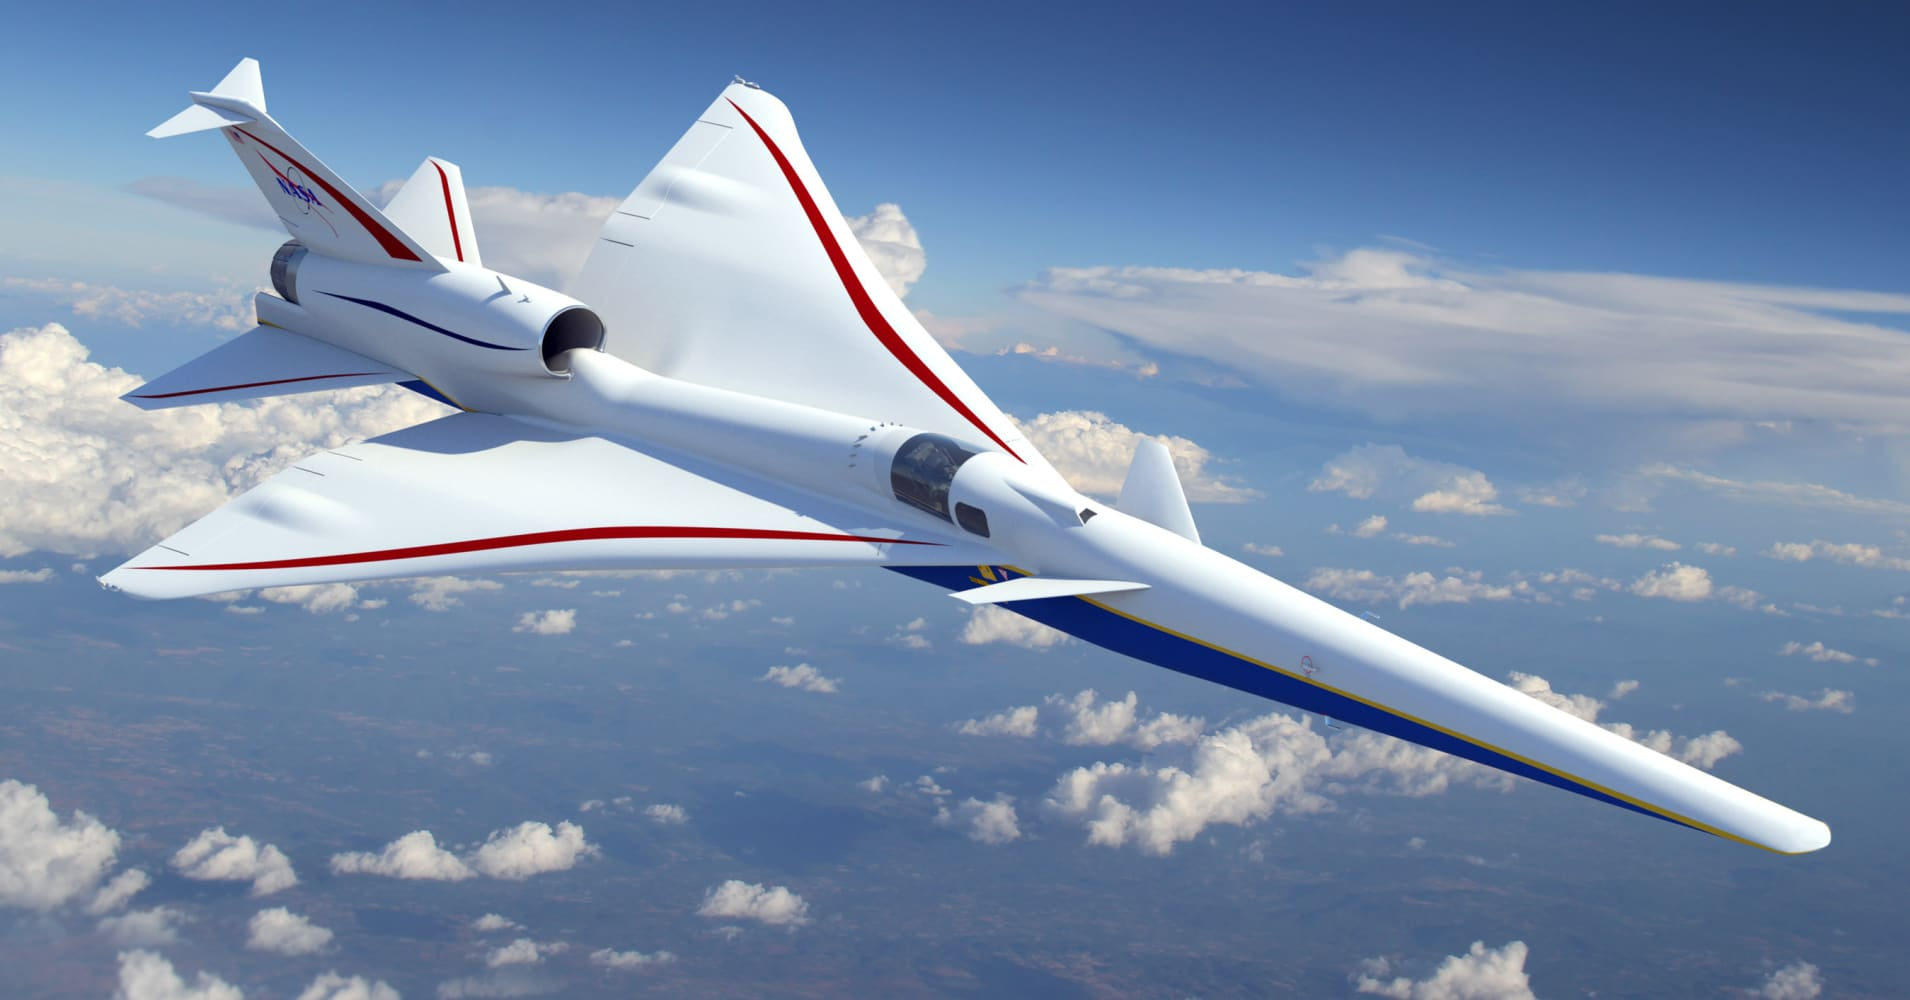 NASA hands massive supersonic contract to Lockheed Martin, with one catch: No sonic boom